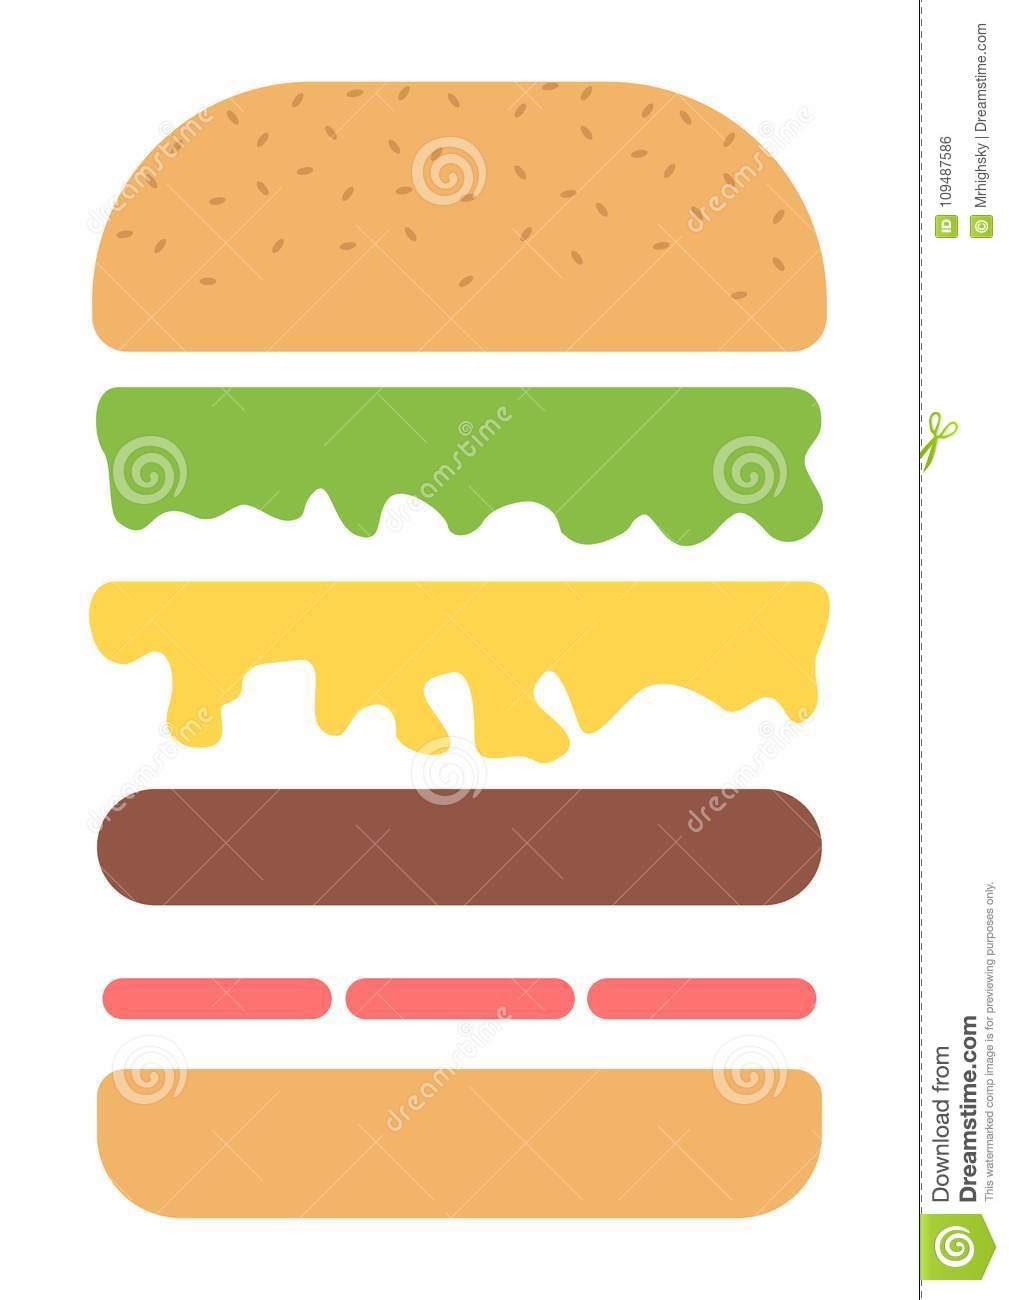 Burger Ingredients Layers Style Poster Stock Vector